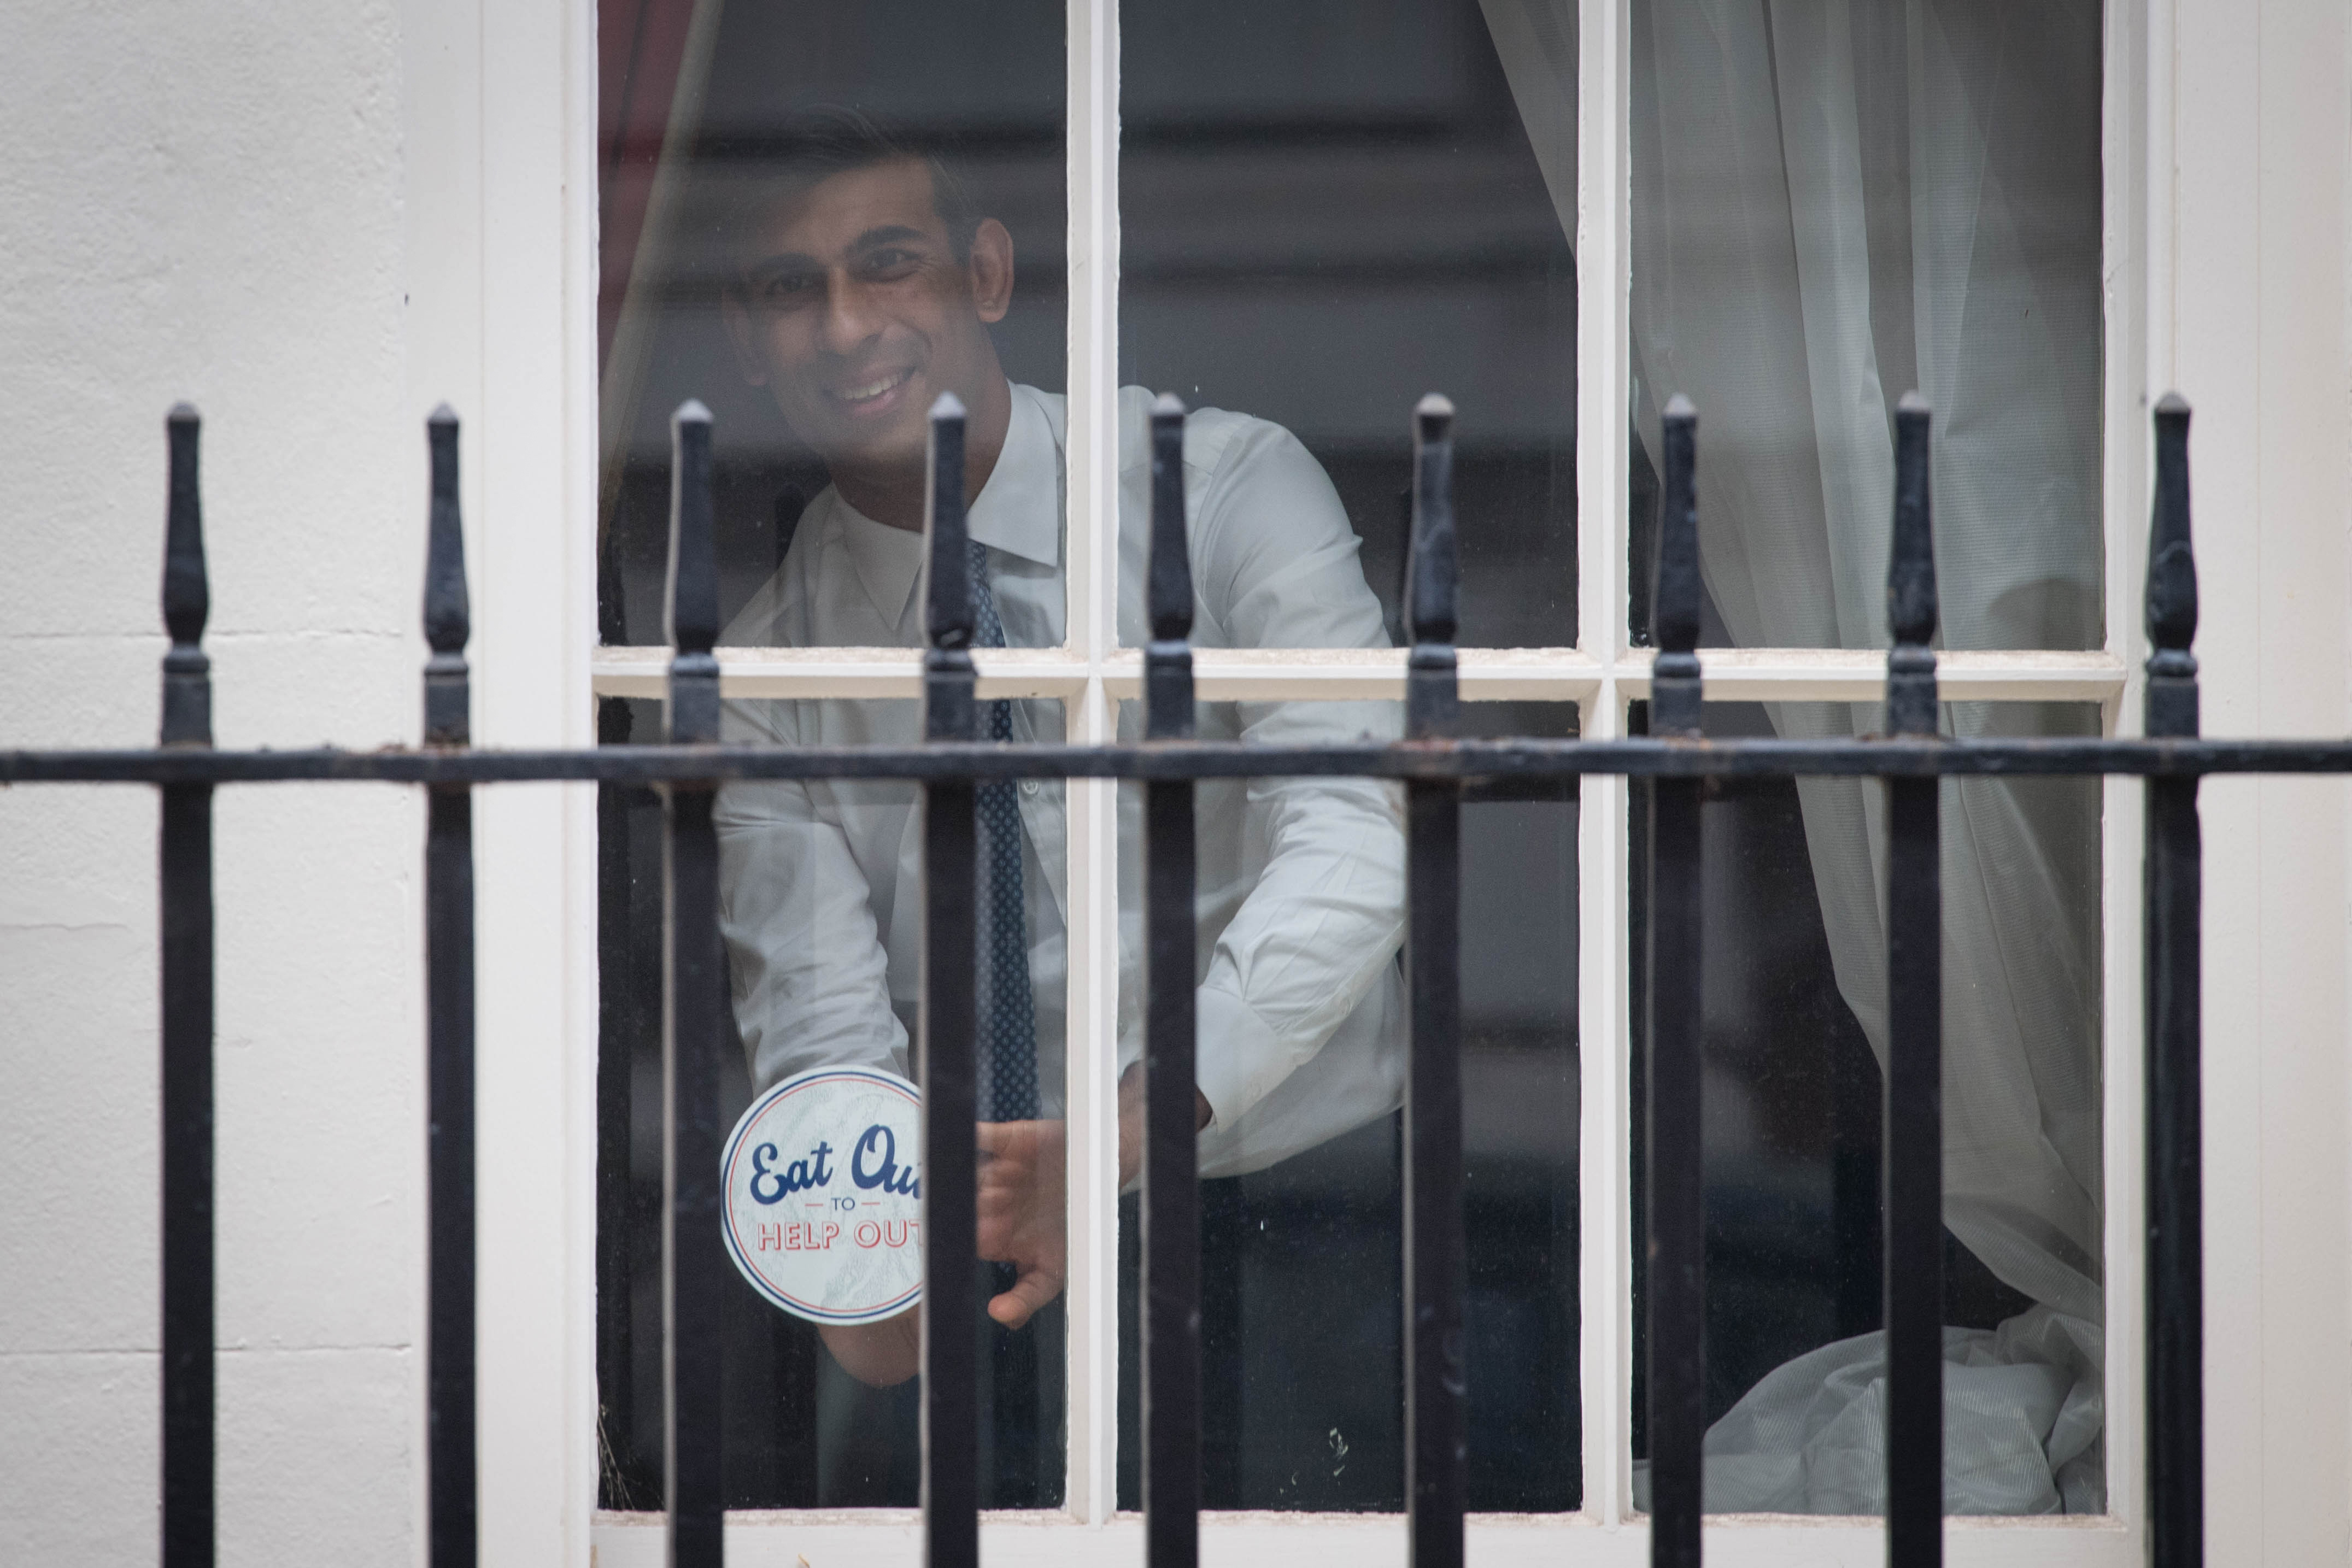 Chancellor Rishi Sunak places an 'Eat out to help out' sticker in the window of No.11 Downing Street in London, ahead of the new scheme encouraging customers to return to the hospitality industry. The initiative will provide up to £10 off meals to diners eating out every Monday, Tuesday and Wednesday during August at participating businesses across the UK. PA Photo. Picture date: Thursday July 16, 2020. See PA story HEALTH Coronavirus. Photo credit should read: Stefan Rousseau/PA Wire